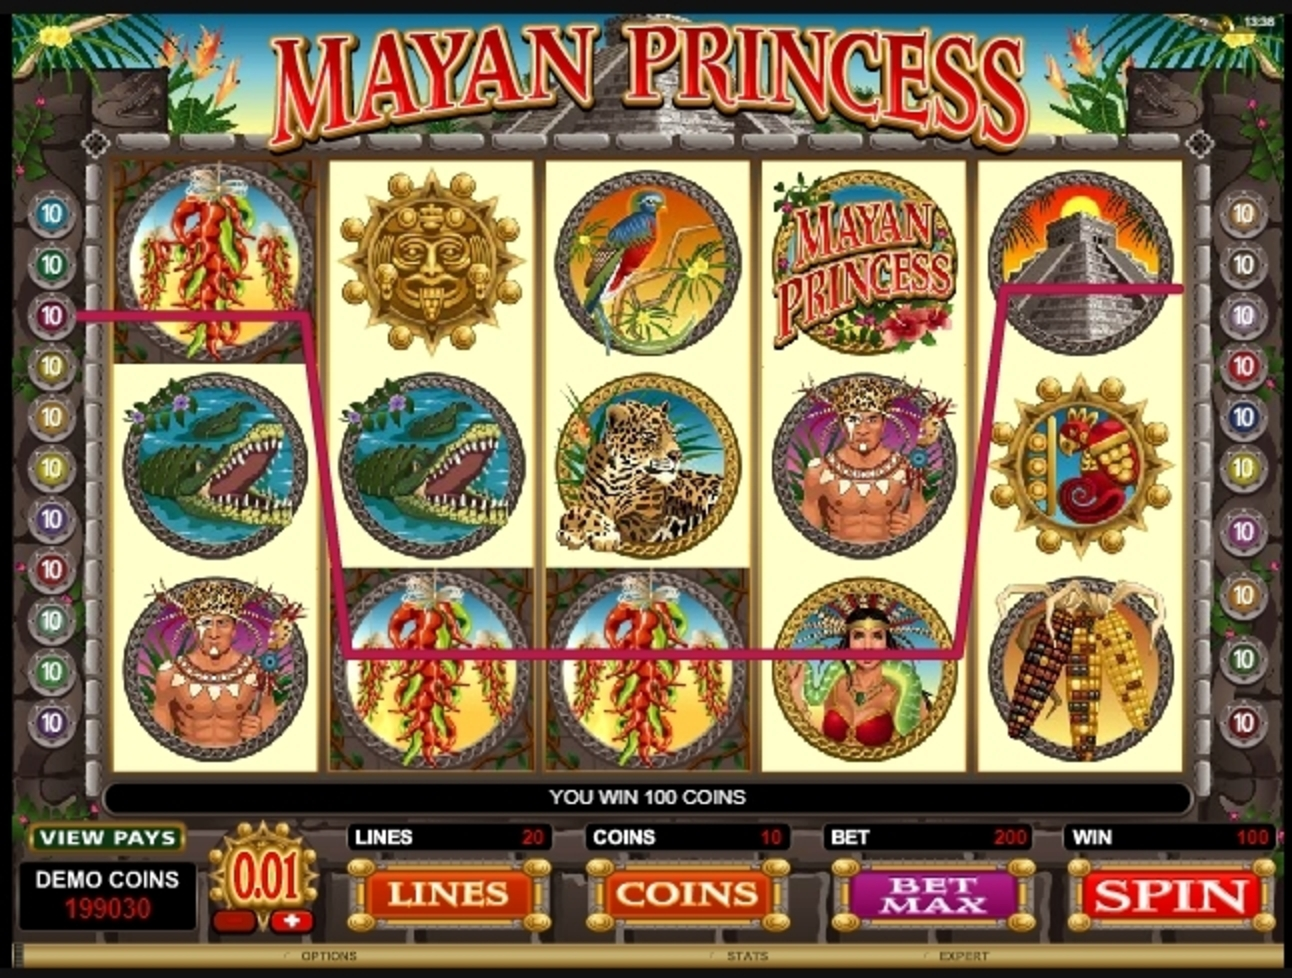 Win Money in Mayan Princess Free Slot Game by Microgaming